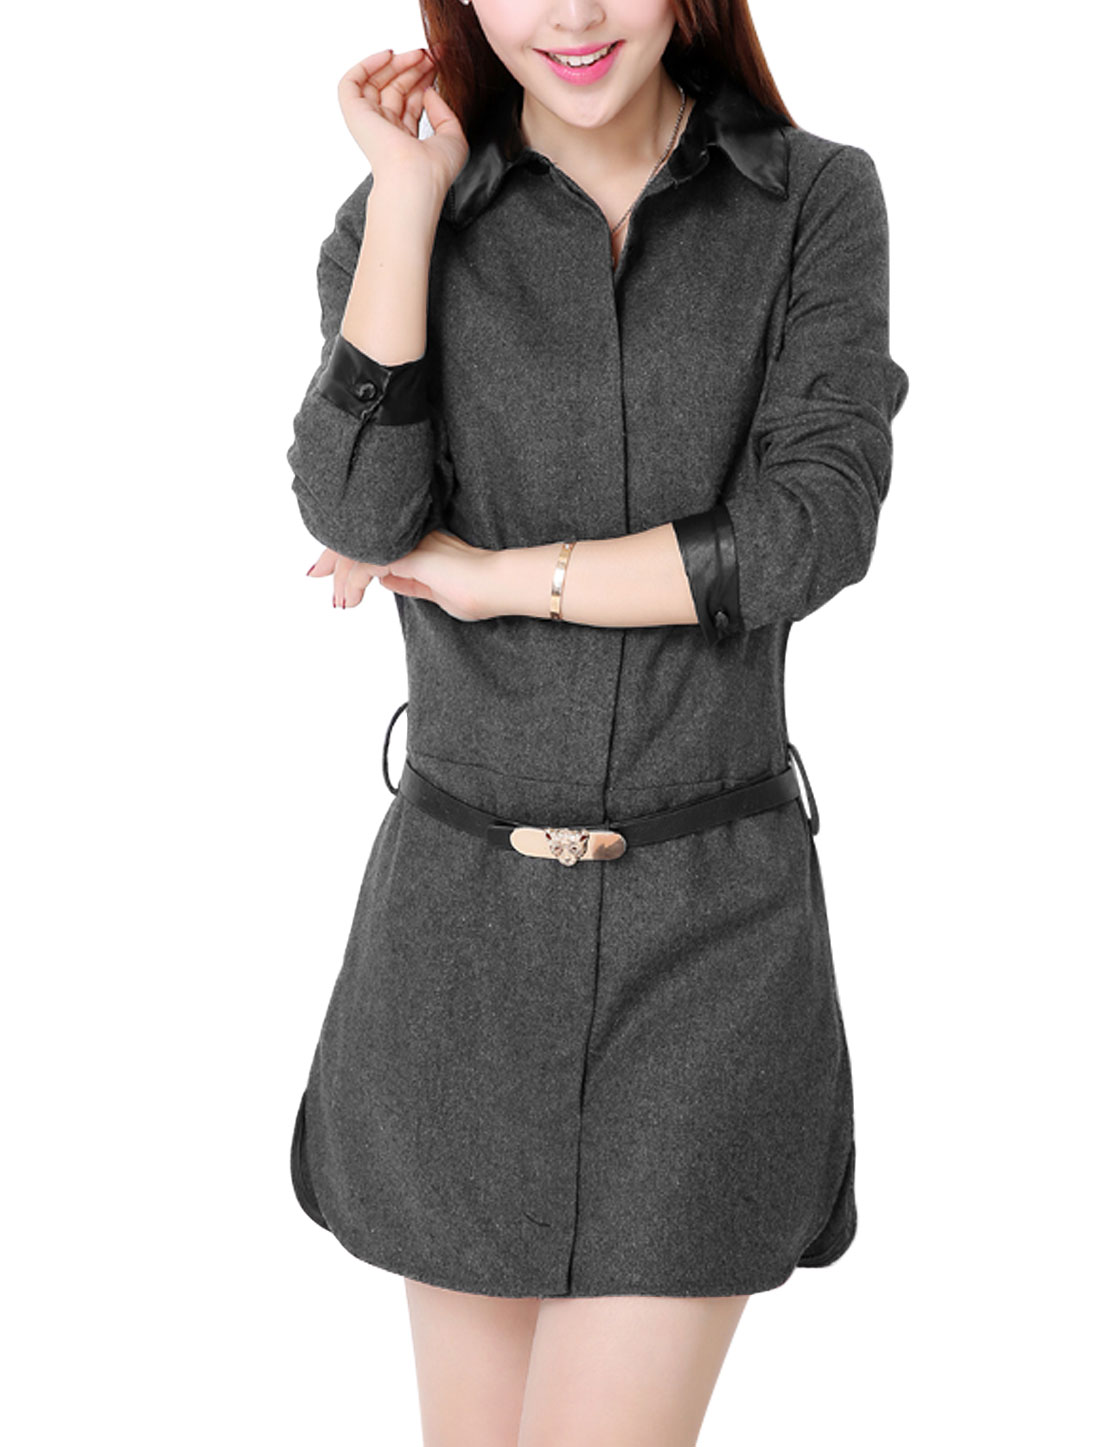 Lady Long Sleeve Button Cuffs Point Collar Dress w Belt Dark Gray S